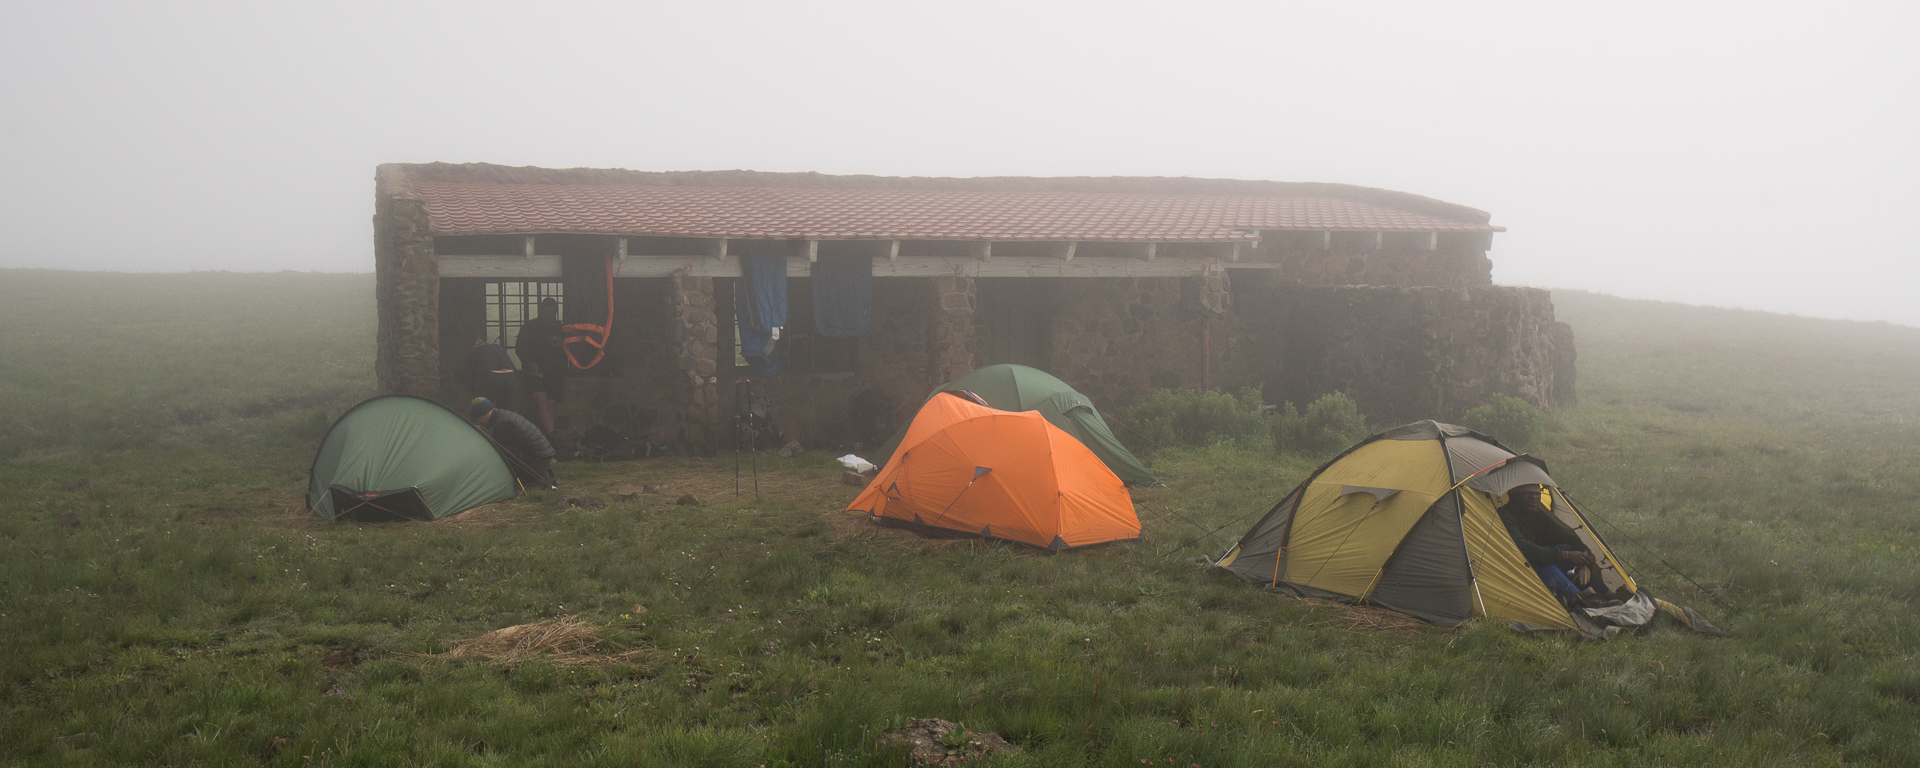 Our camp at Centenery Hut was clouded out all night and the following morning. It's just as well because we needed the rest! The hut itself is sadly ruined and in need of serious repair.